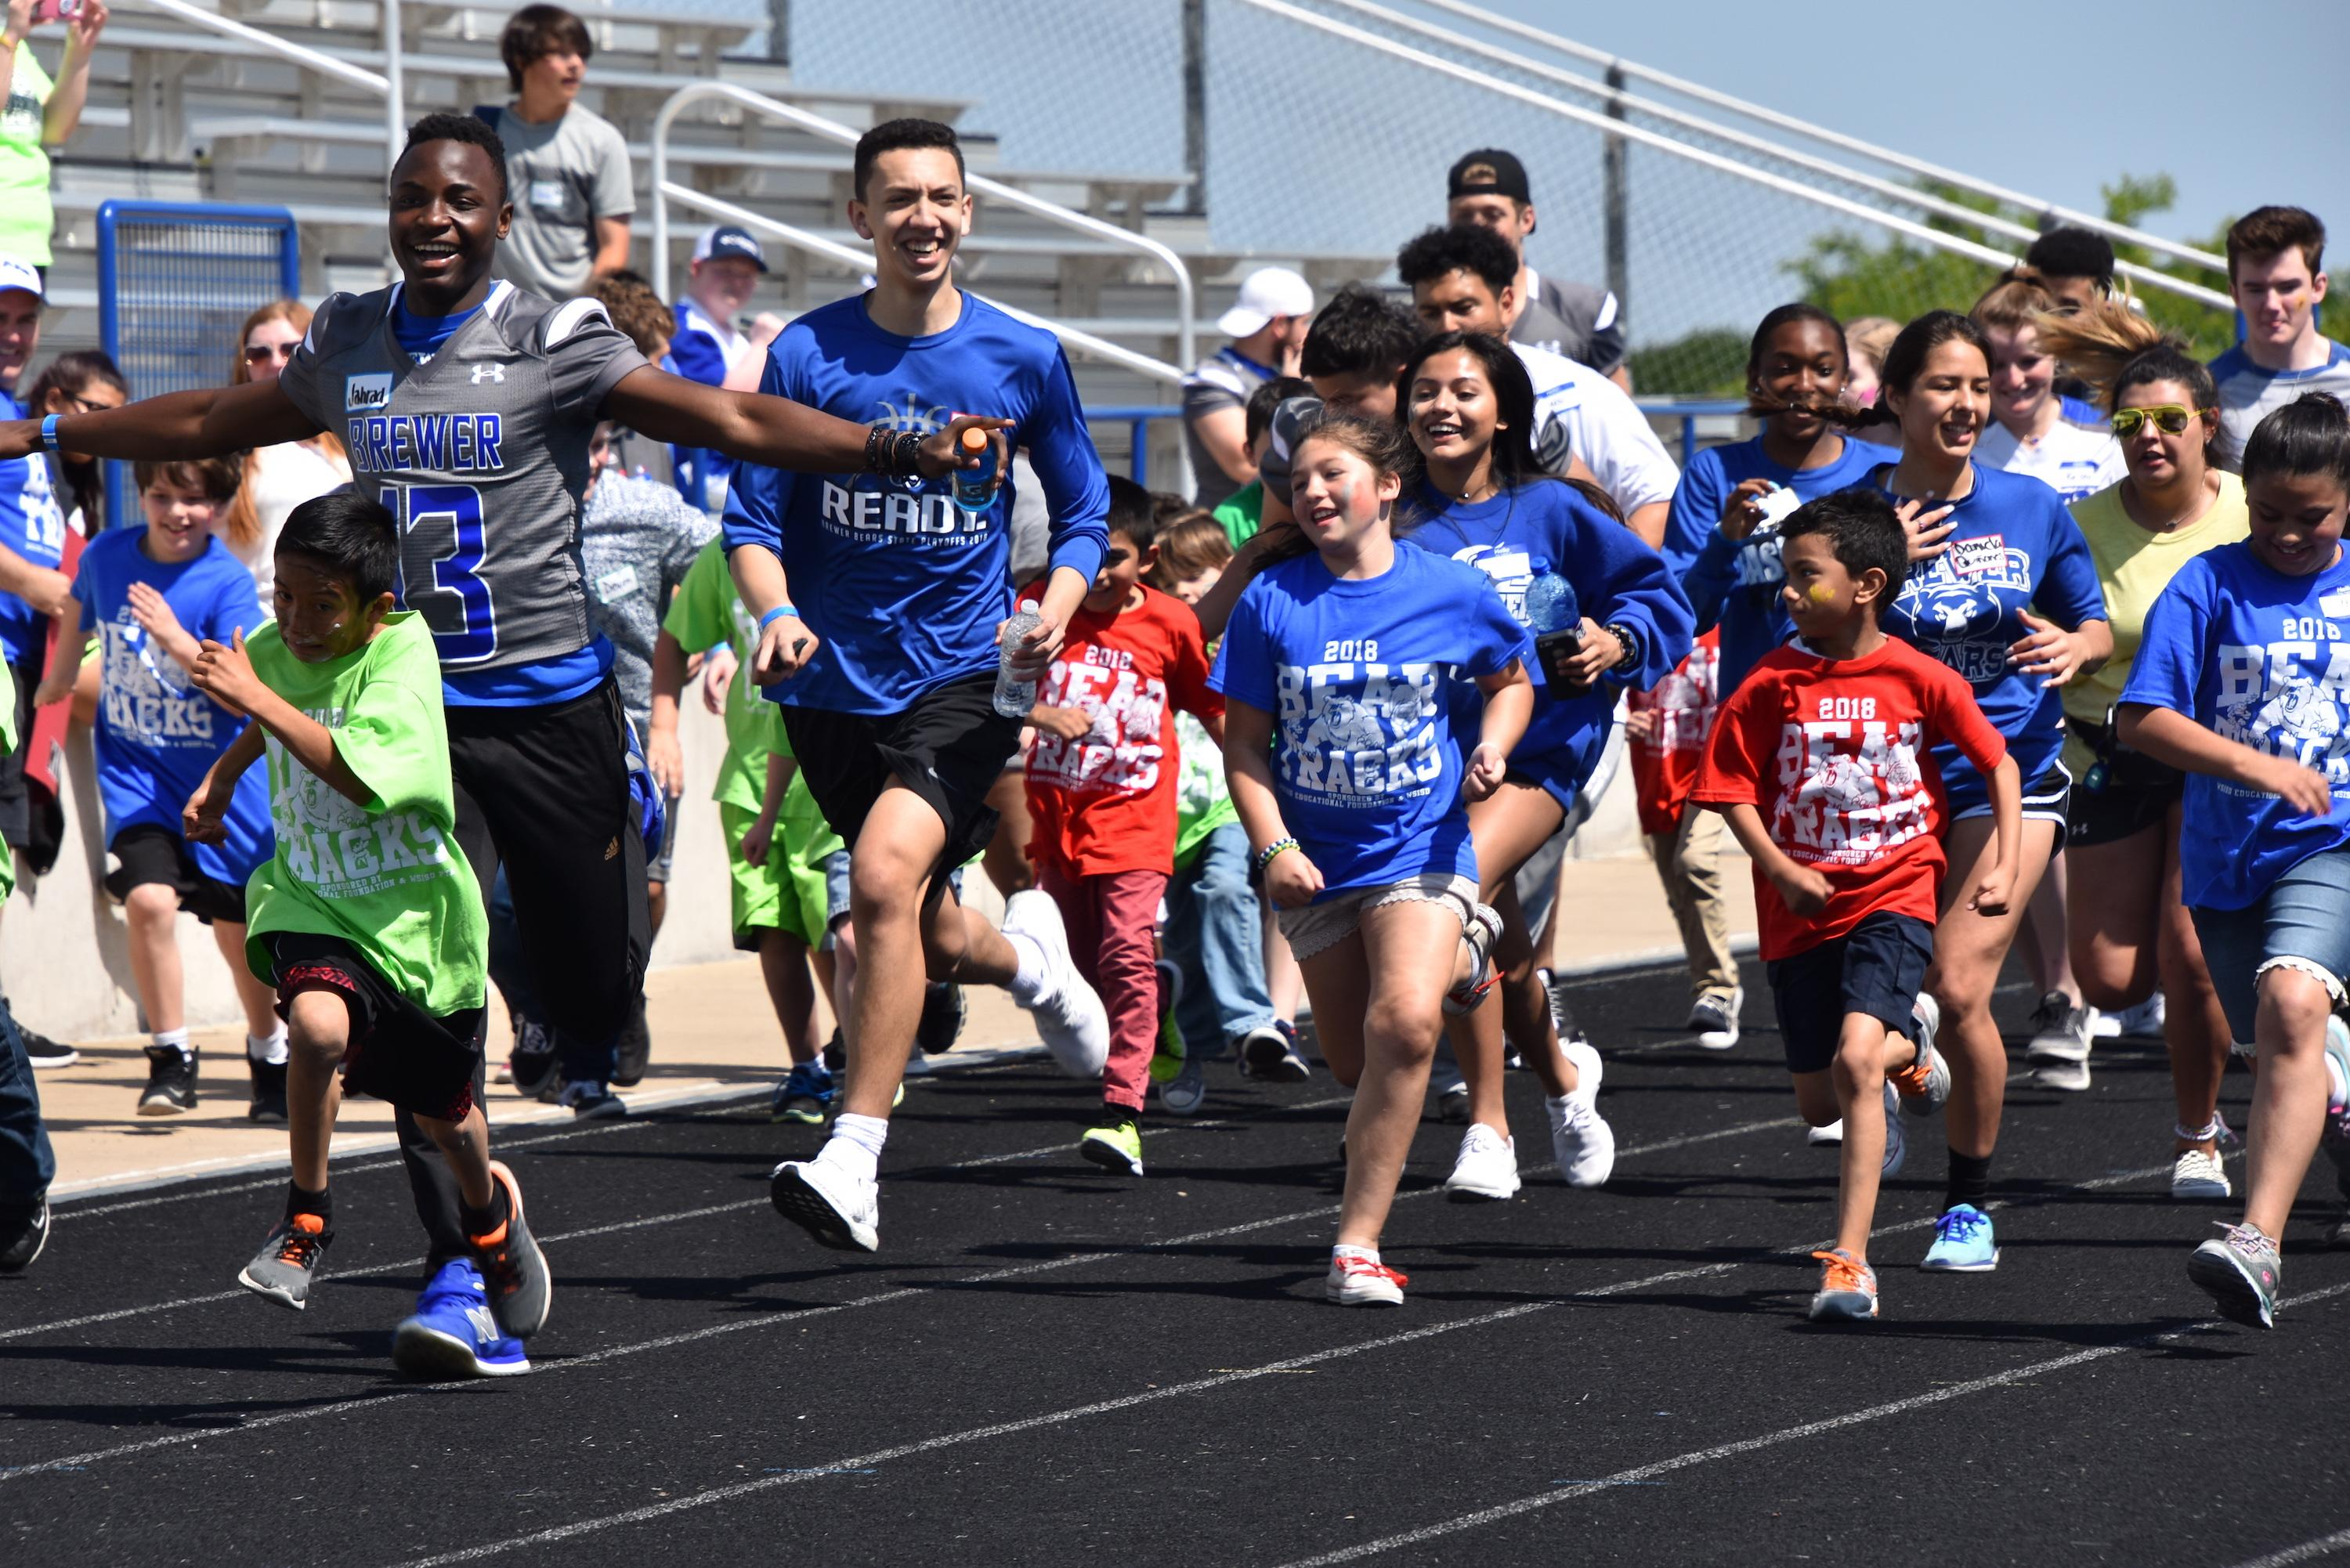 More than 350 students from WSISD, Lake Worth, Castleberry and Azle ISDs partipated in the annual Bear Tracks Meet on April 27.